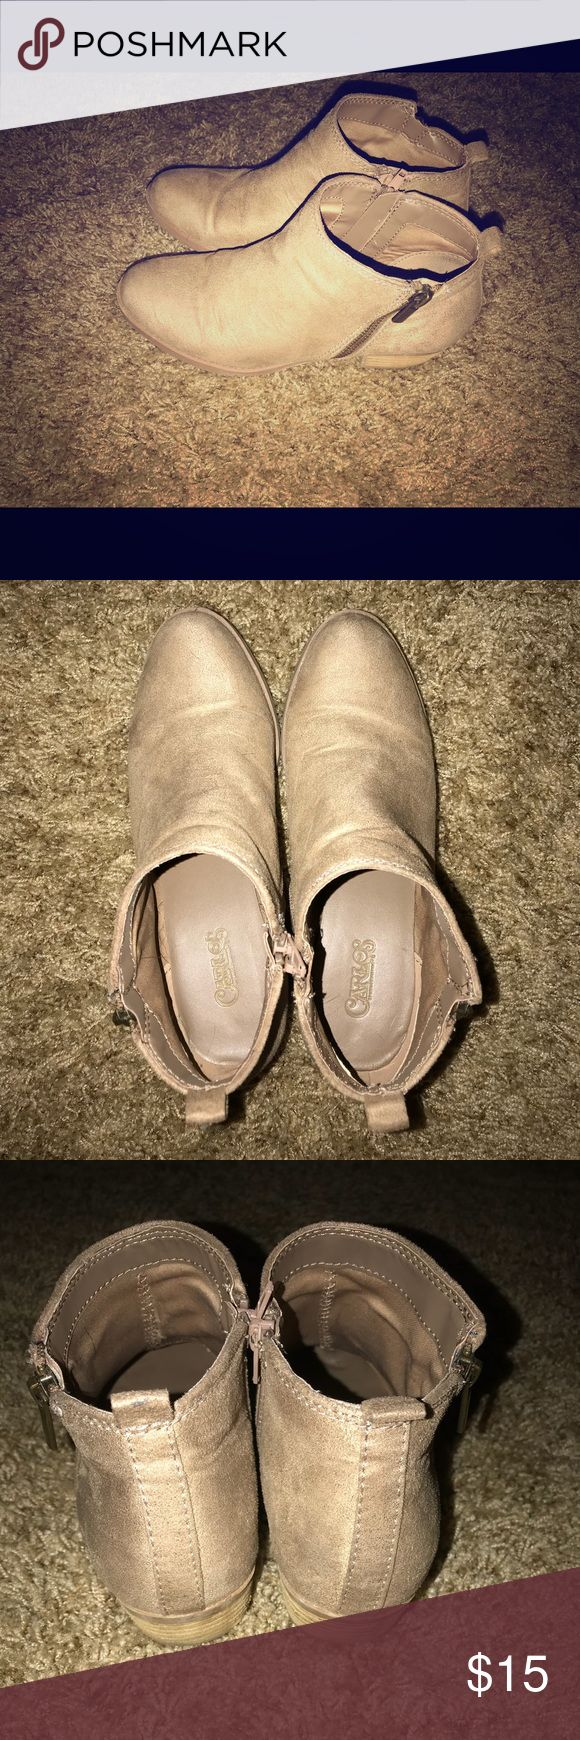 Carlos tan suede booties! Nude/tan suede booties super cute and versatile! Hardly worn and no stains/scuffs! Carlos Shoes Ankle Boots & Booties